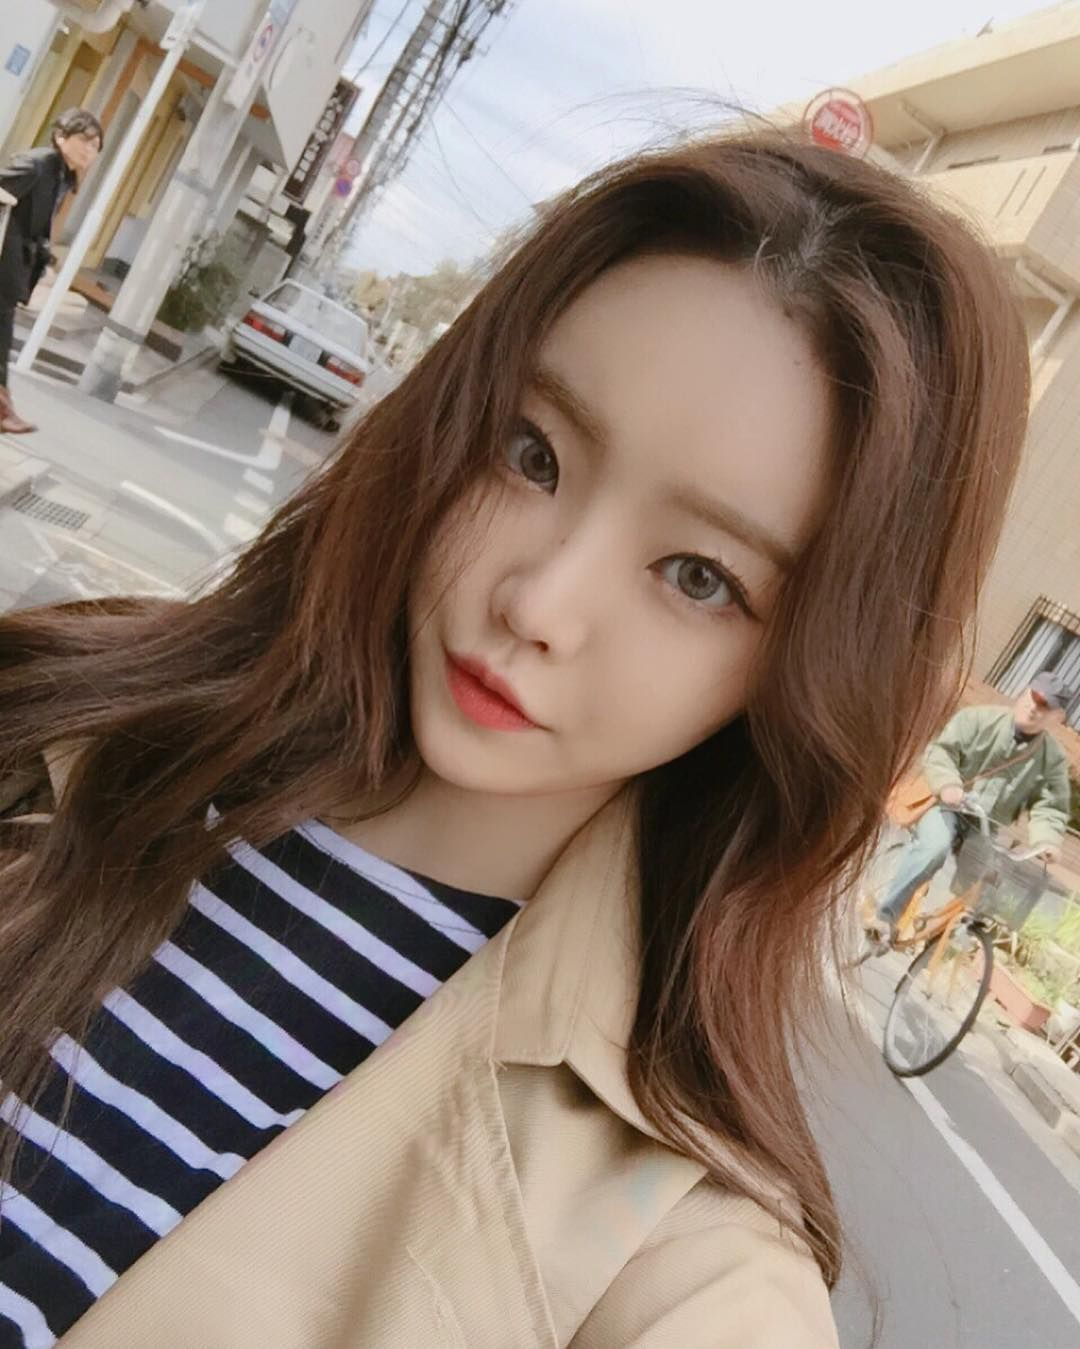 Korean Instagram